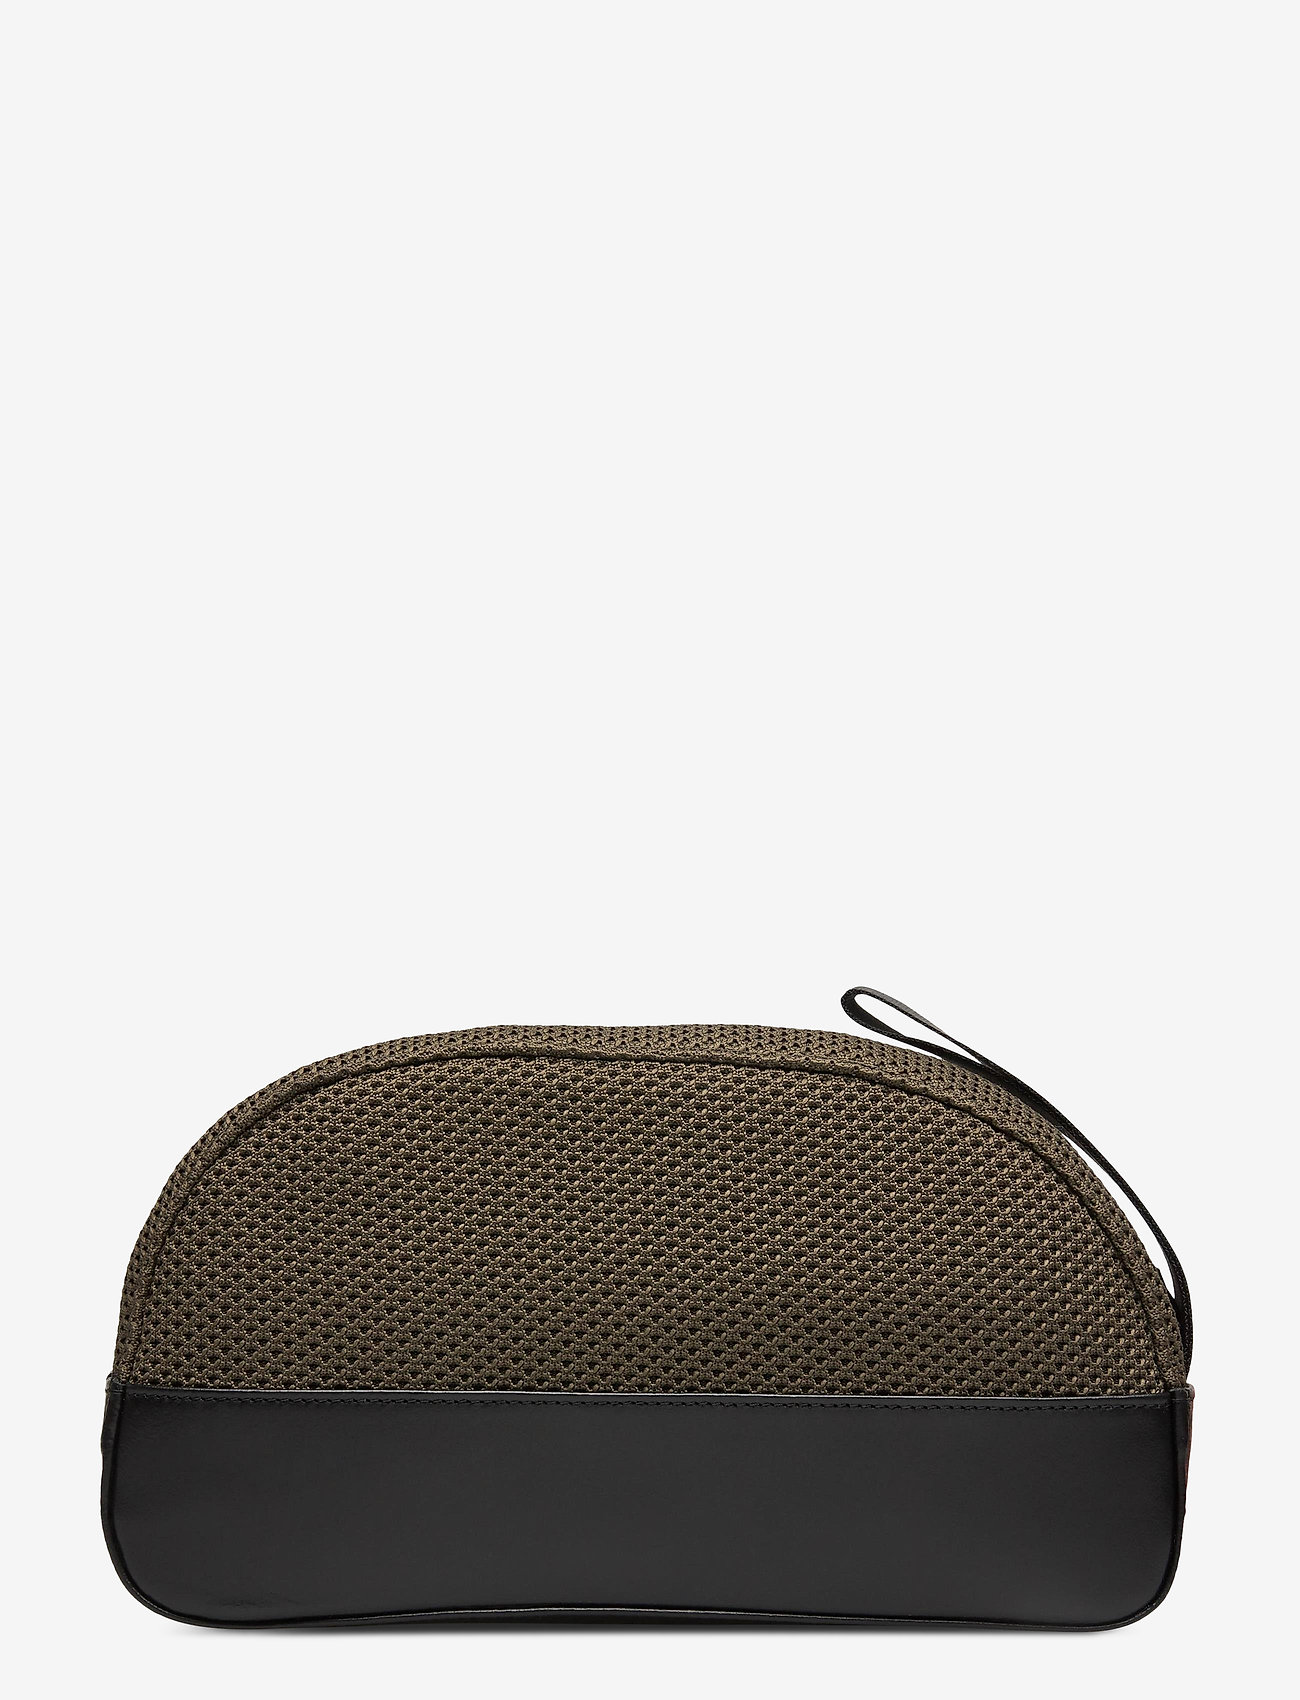 Sprint Travel Kit (Olive) - Royal RepubliQ jDJdXj